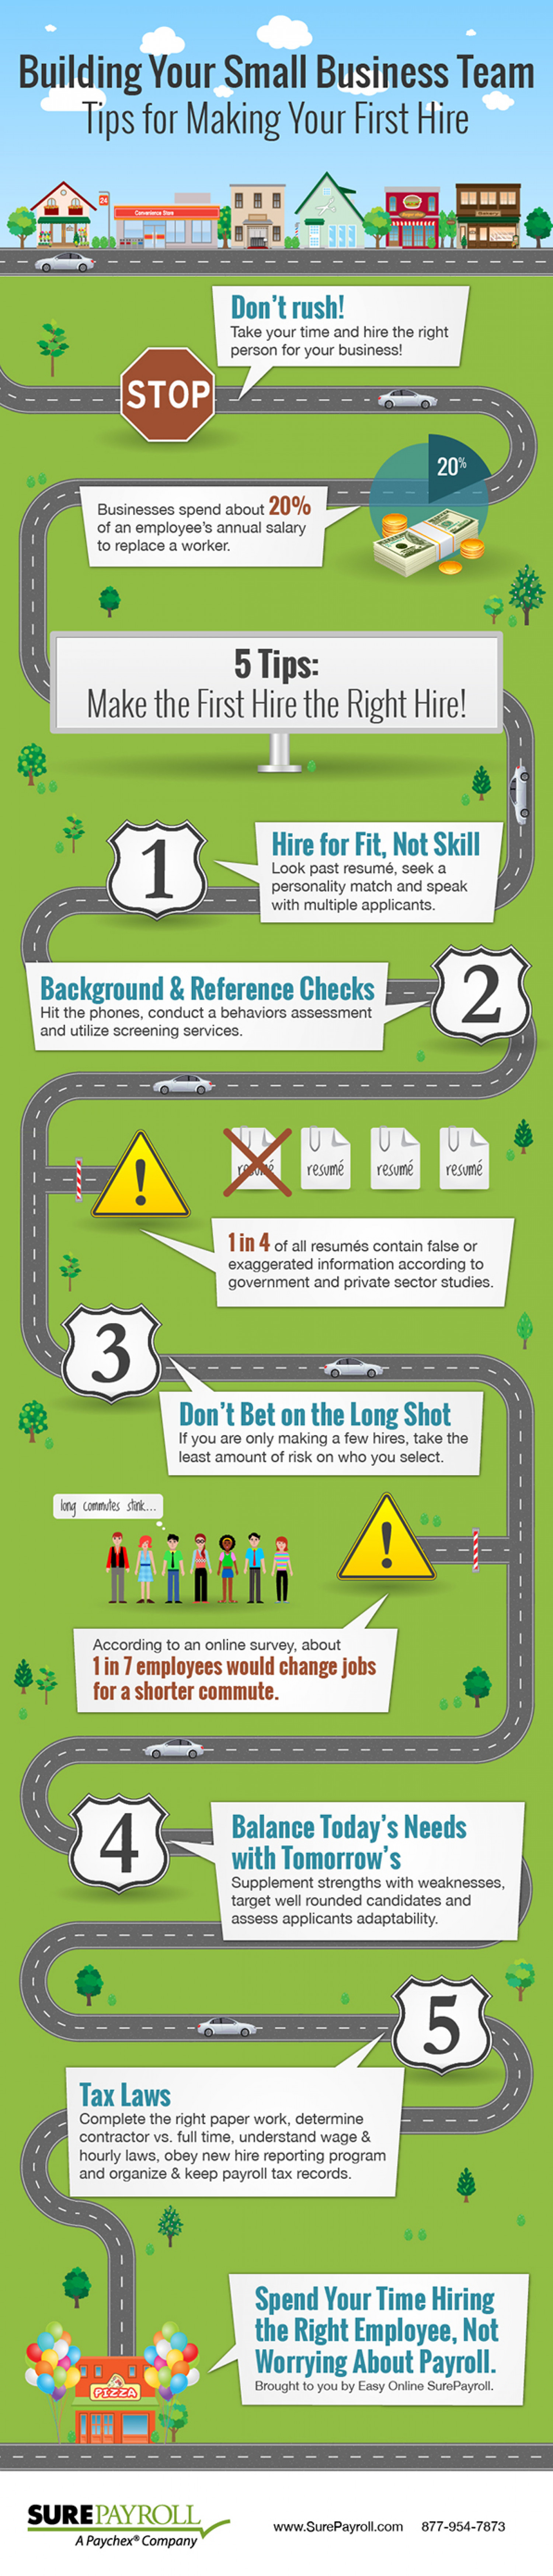 Tips for Making Your First Hire Infographic